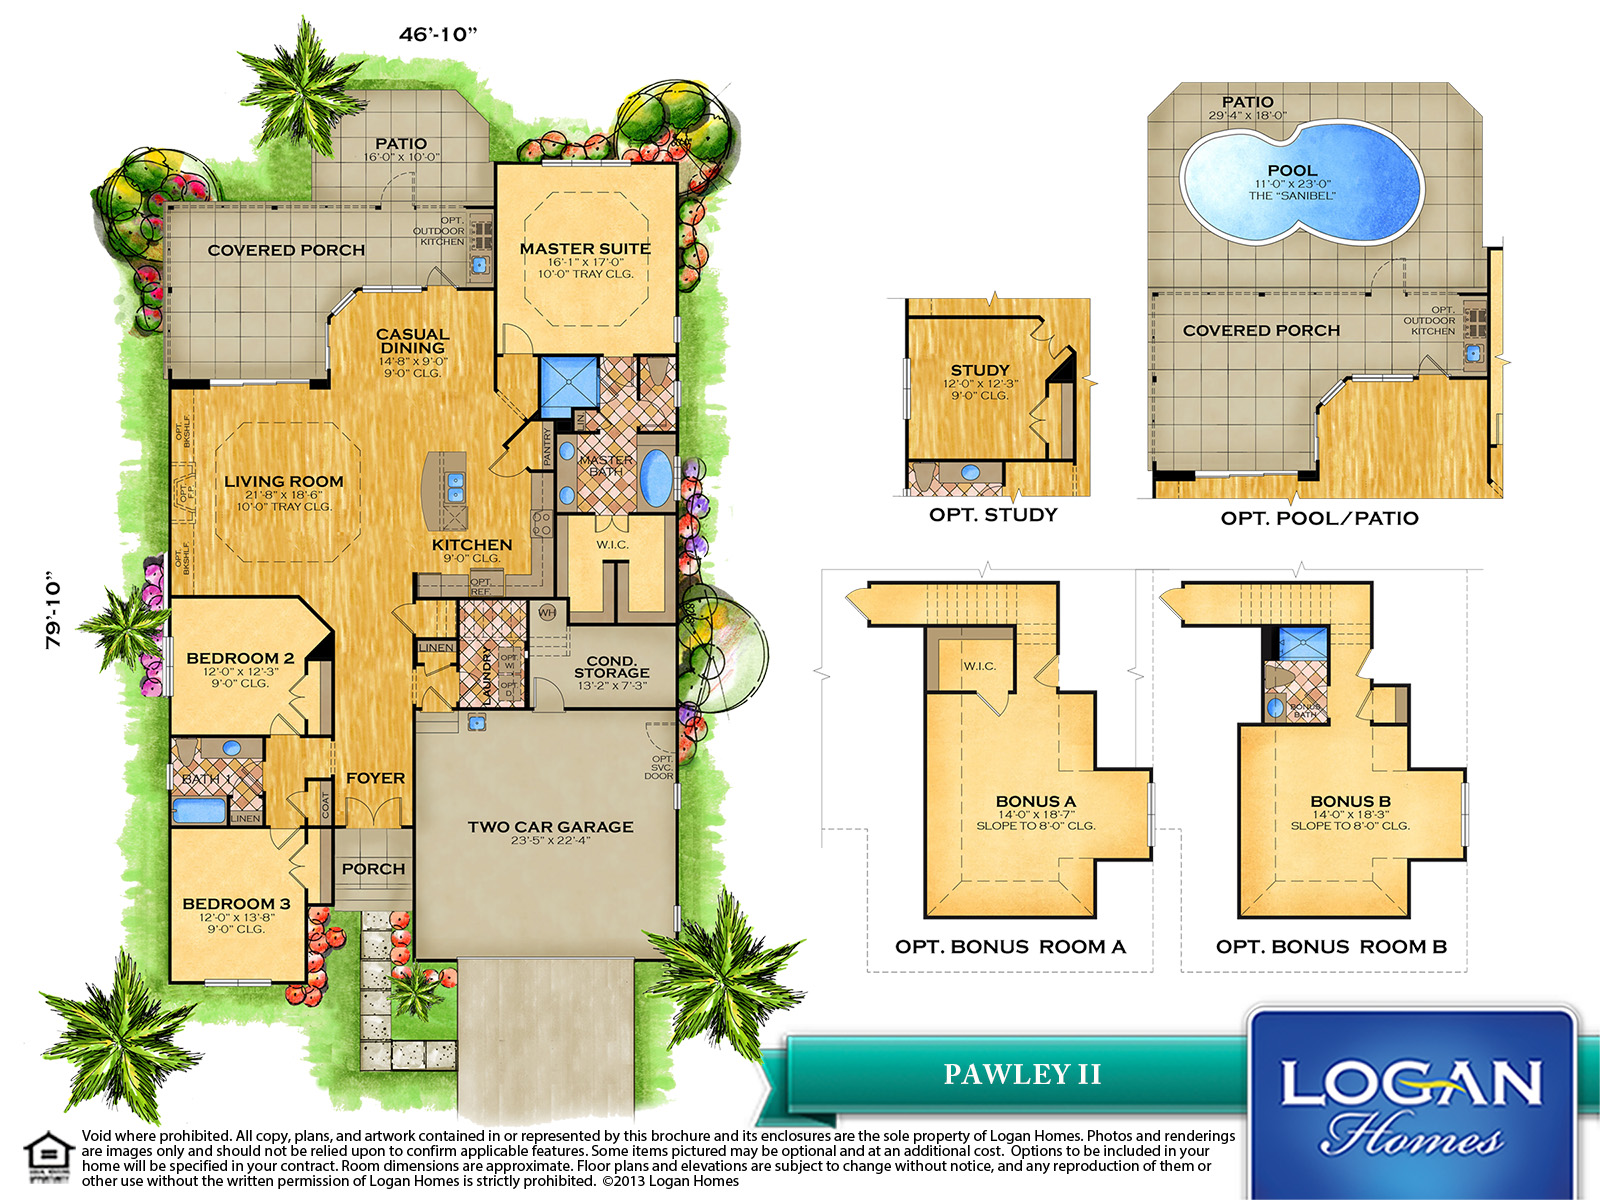 Pawley Ii Floor Plan Models Logan Homes